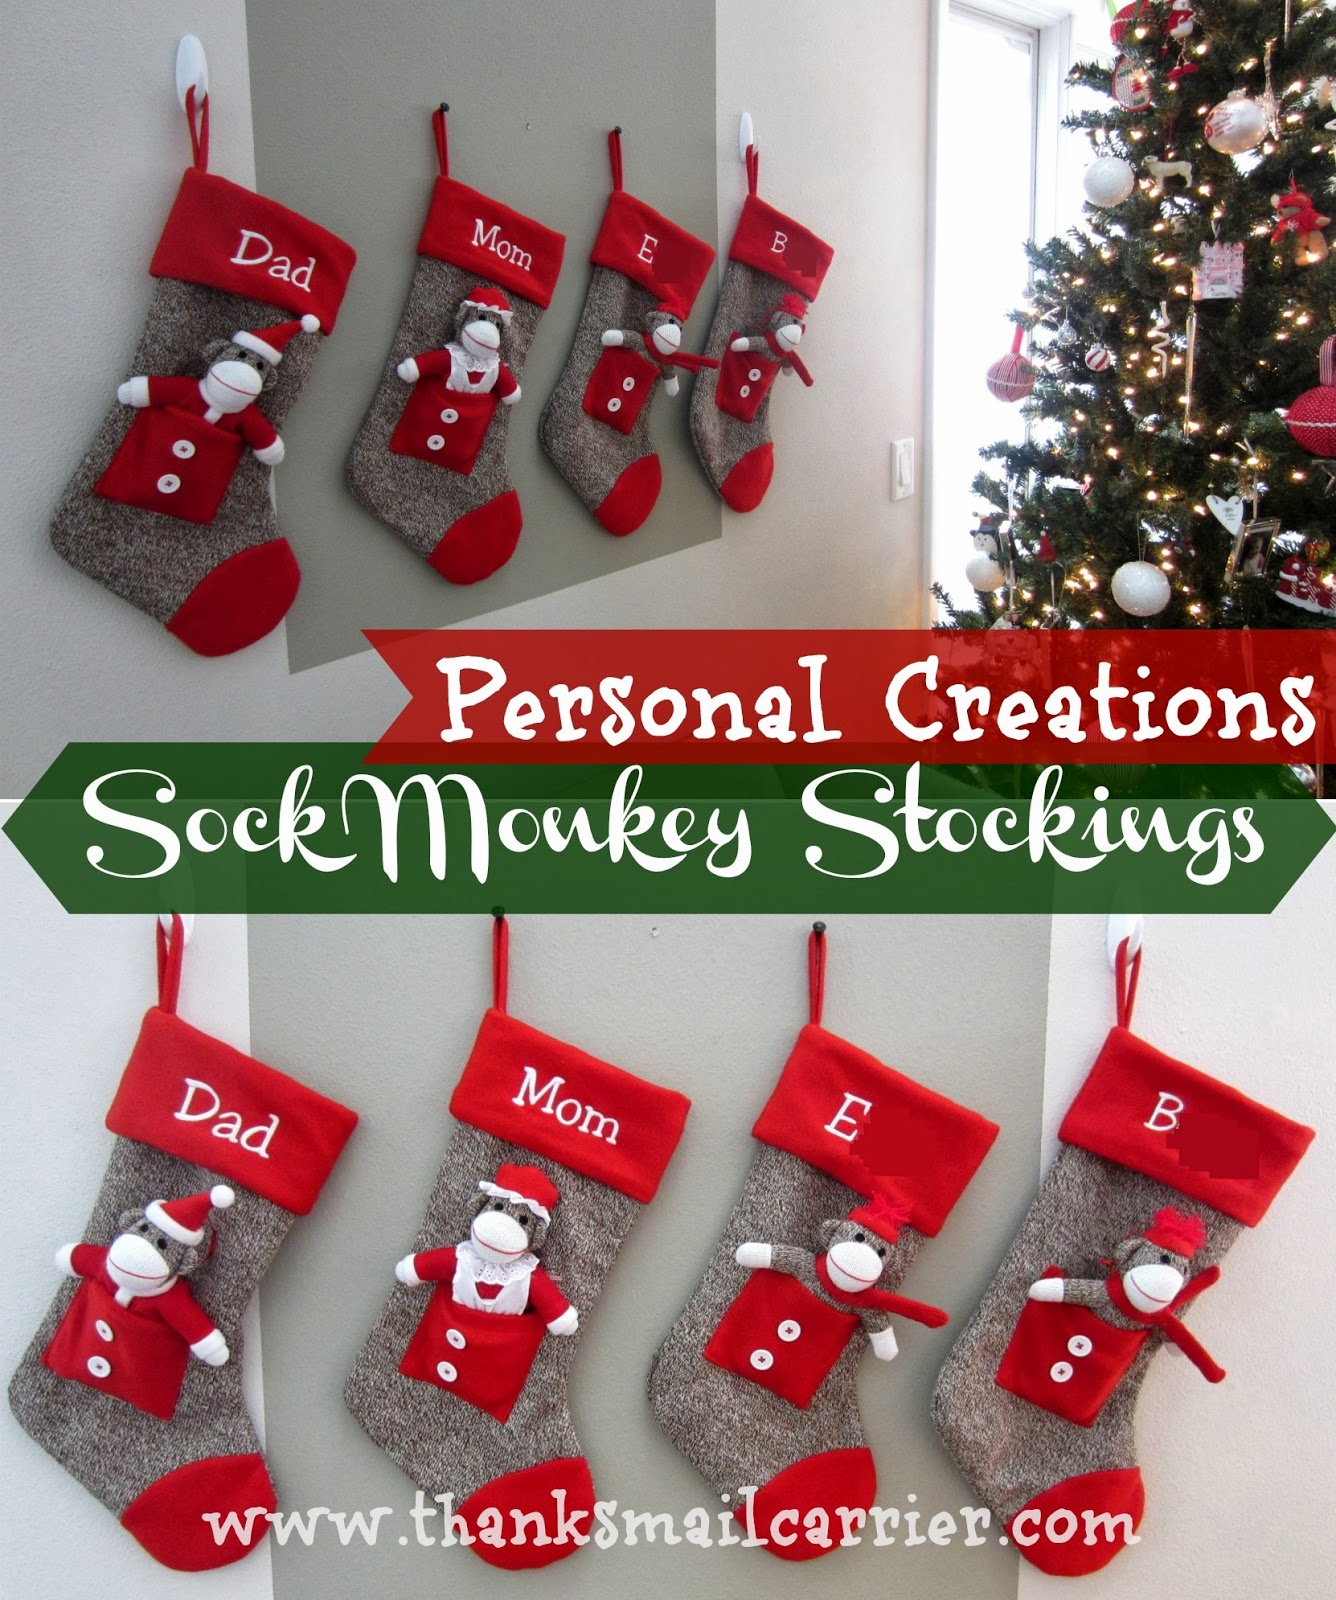 Sock Monkey Stockings